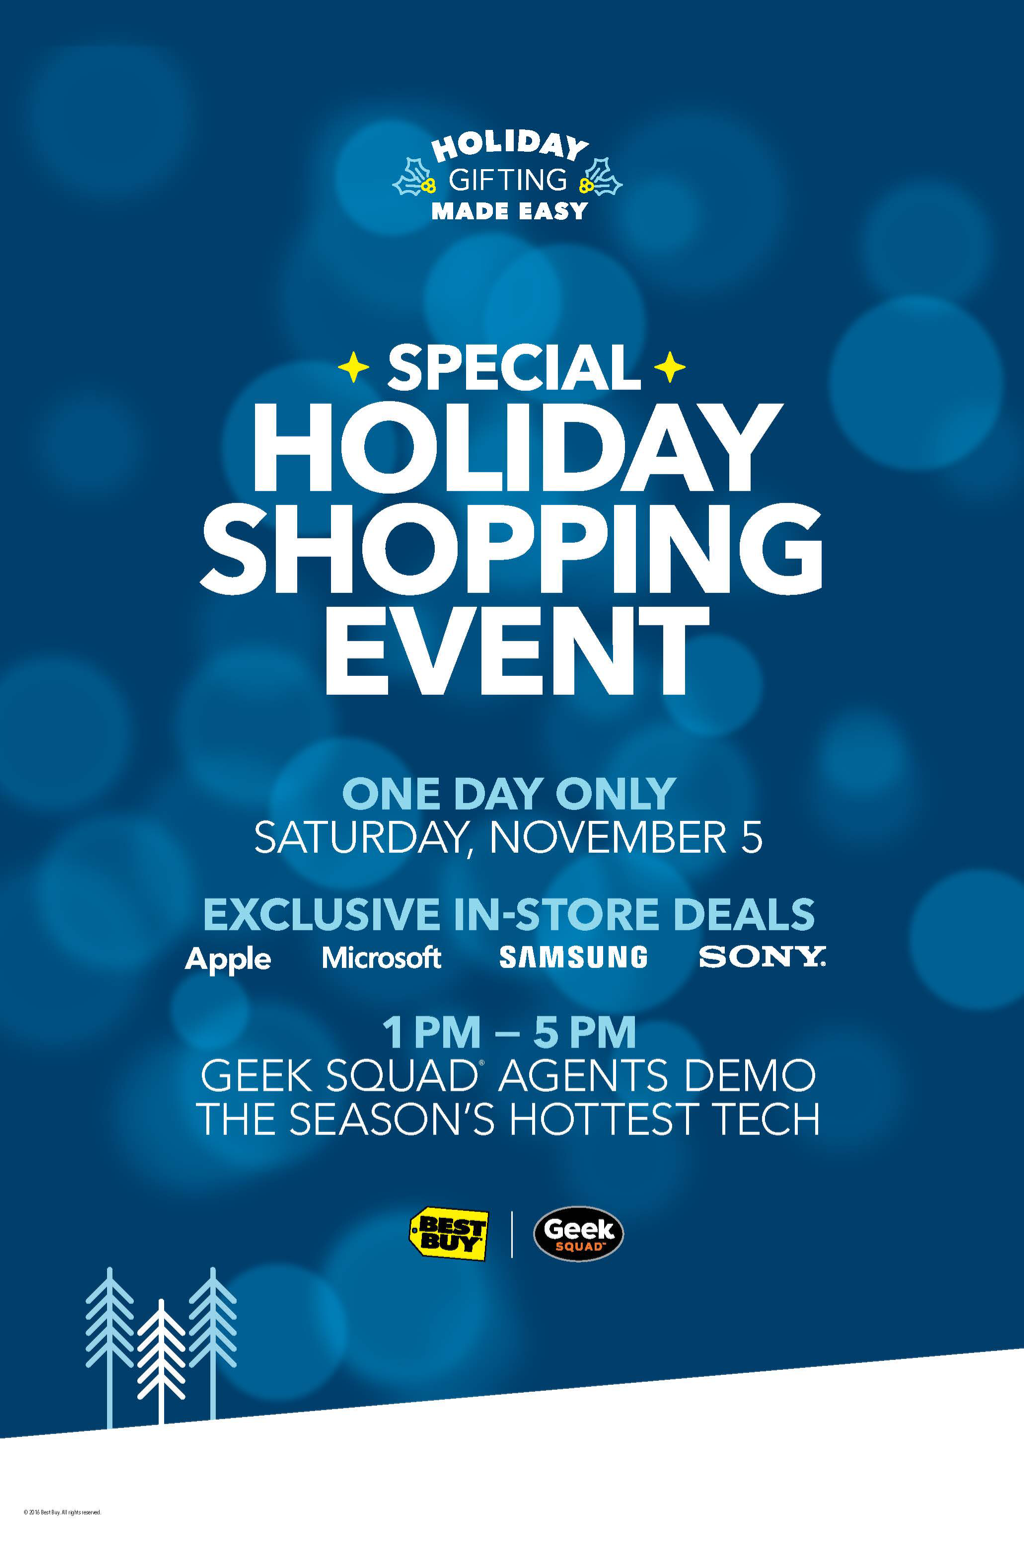 HOLIDAY SHOPPING MADE EASY WITH BEST BUY #AD